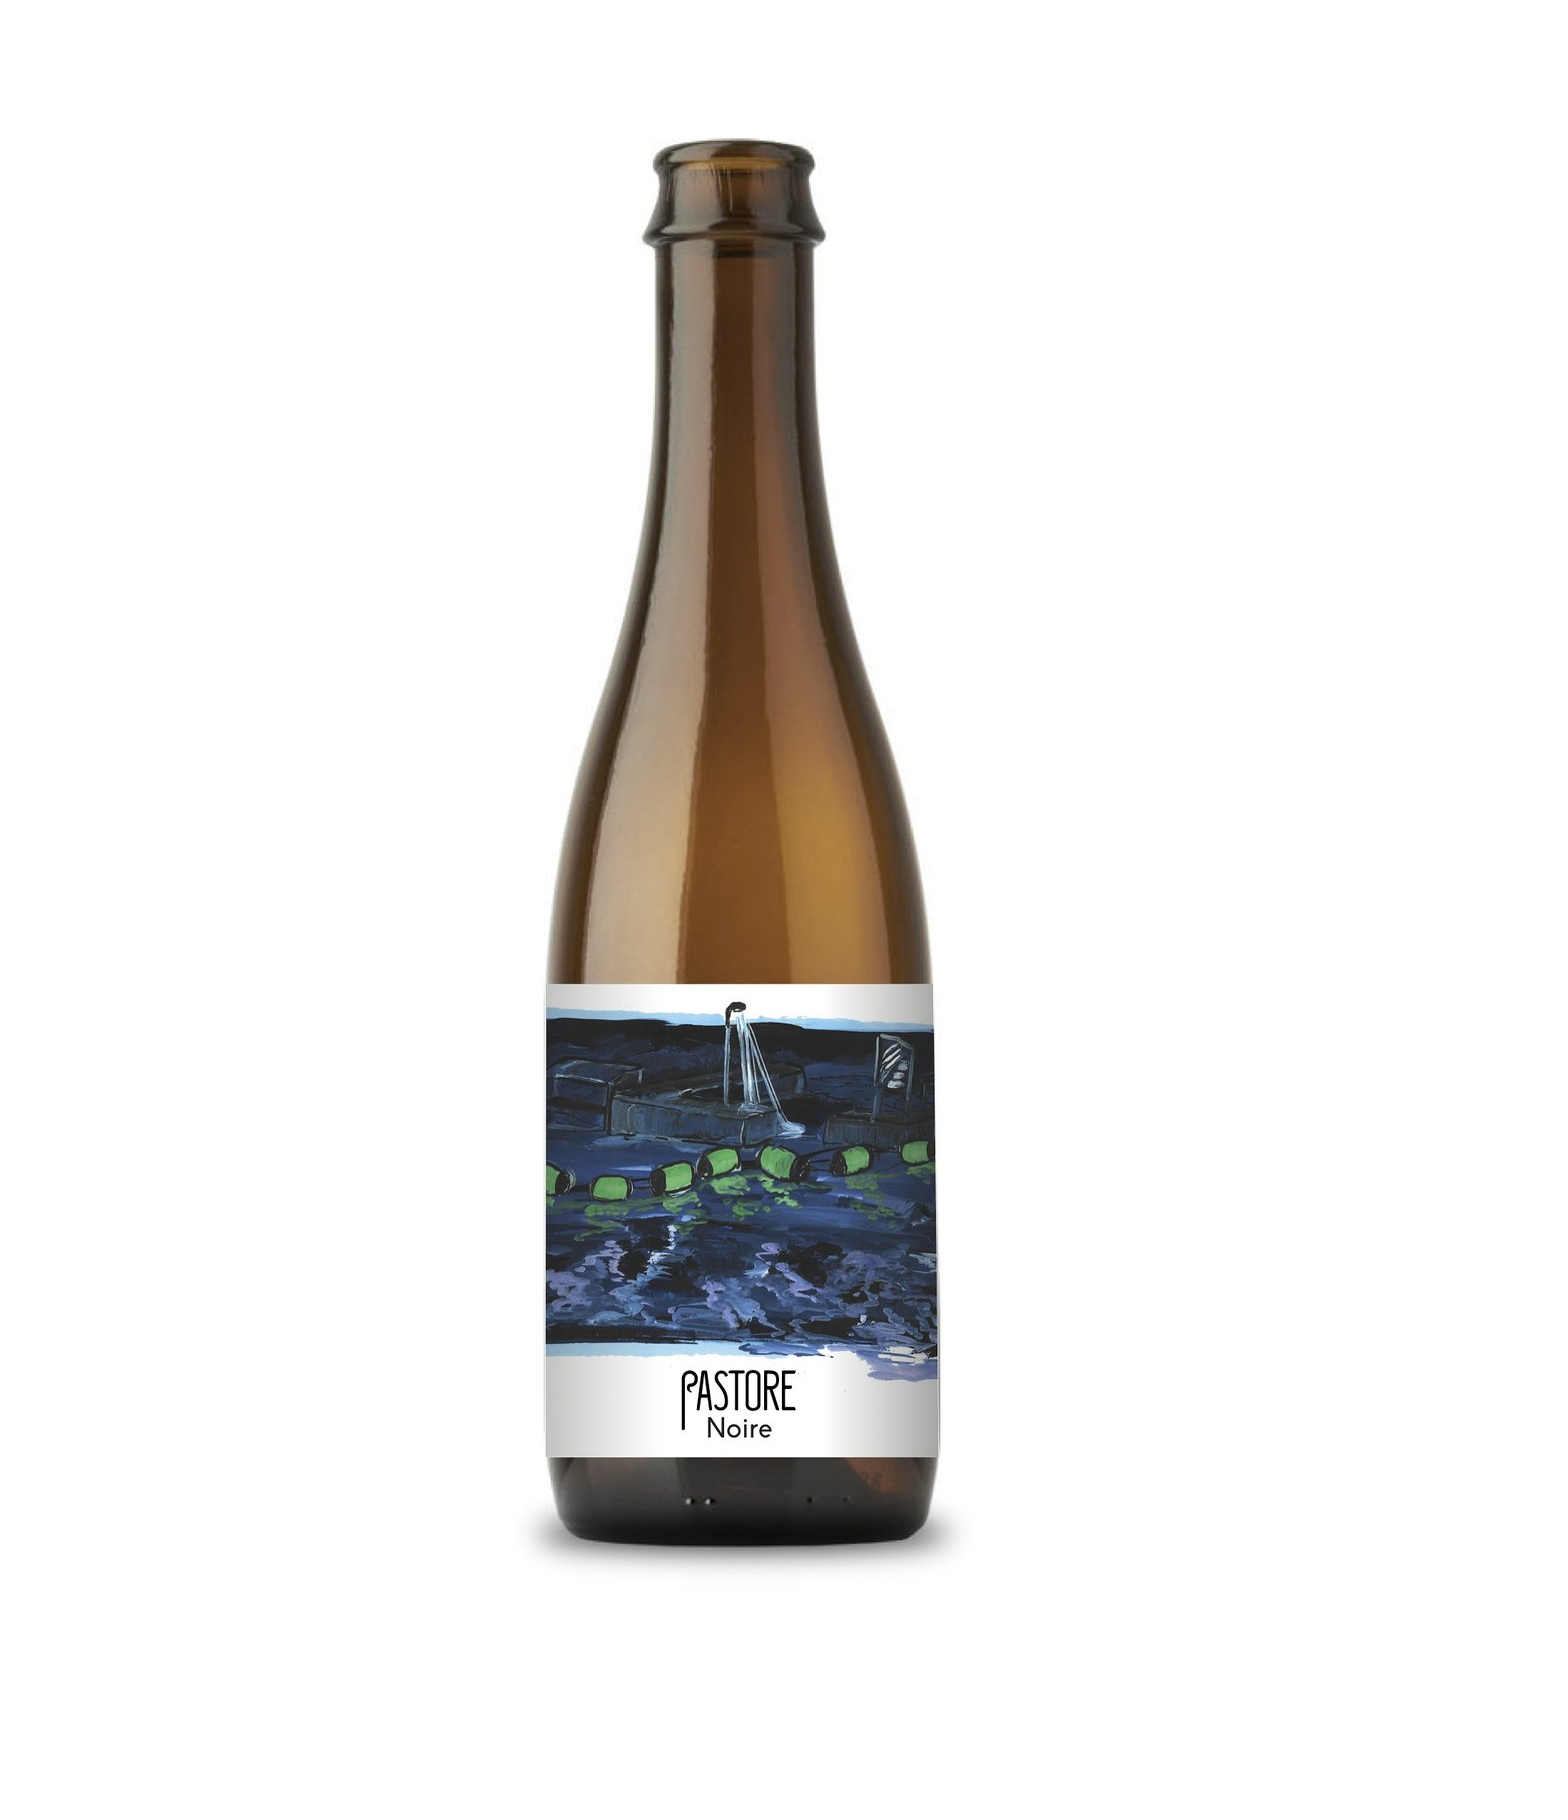 Pastore | Noir | Dark Sour 6.6% 375ml